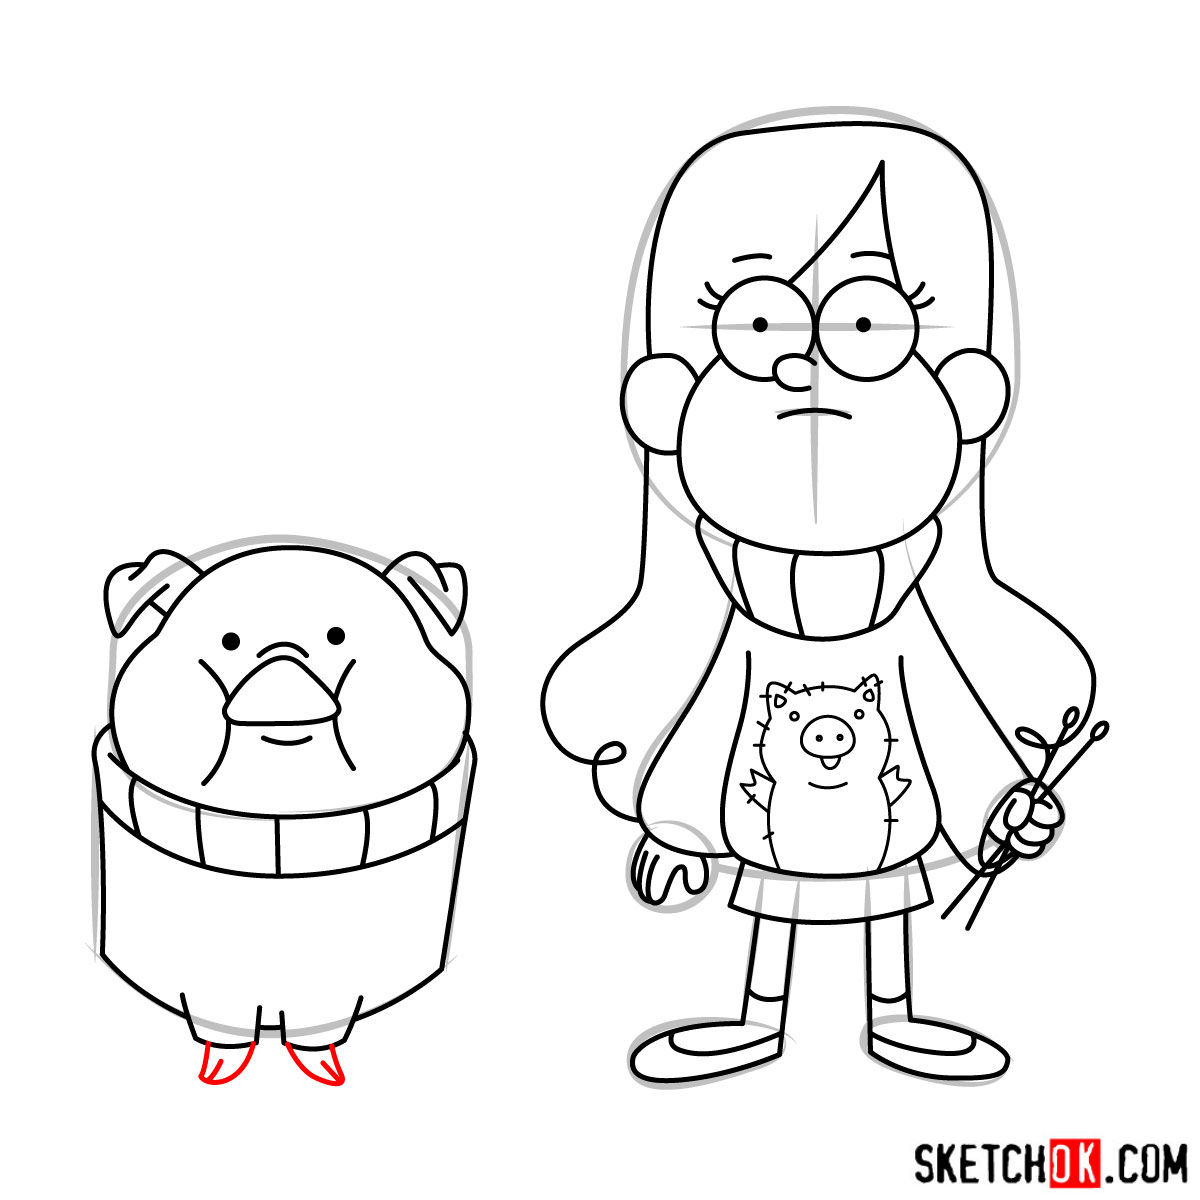 How to draw Mabel Pines with Pig - step 15